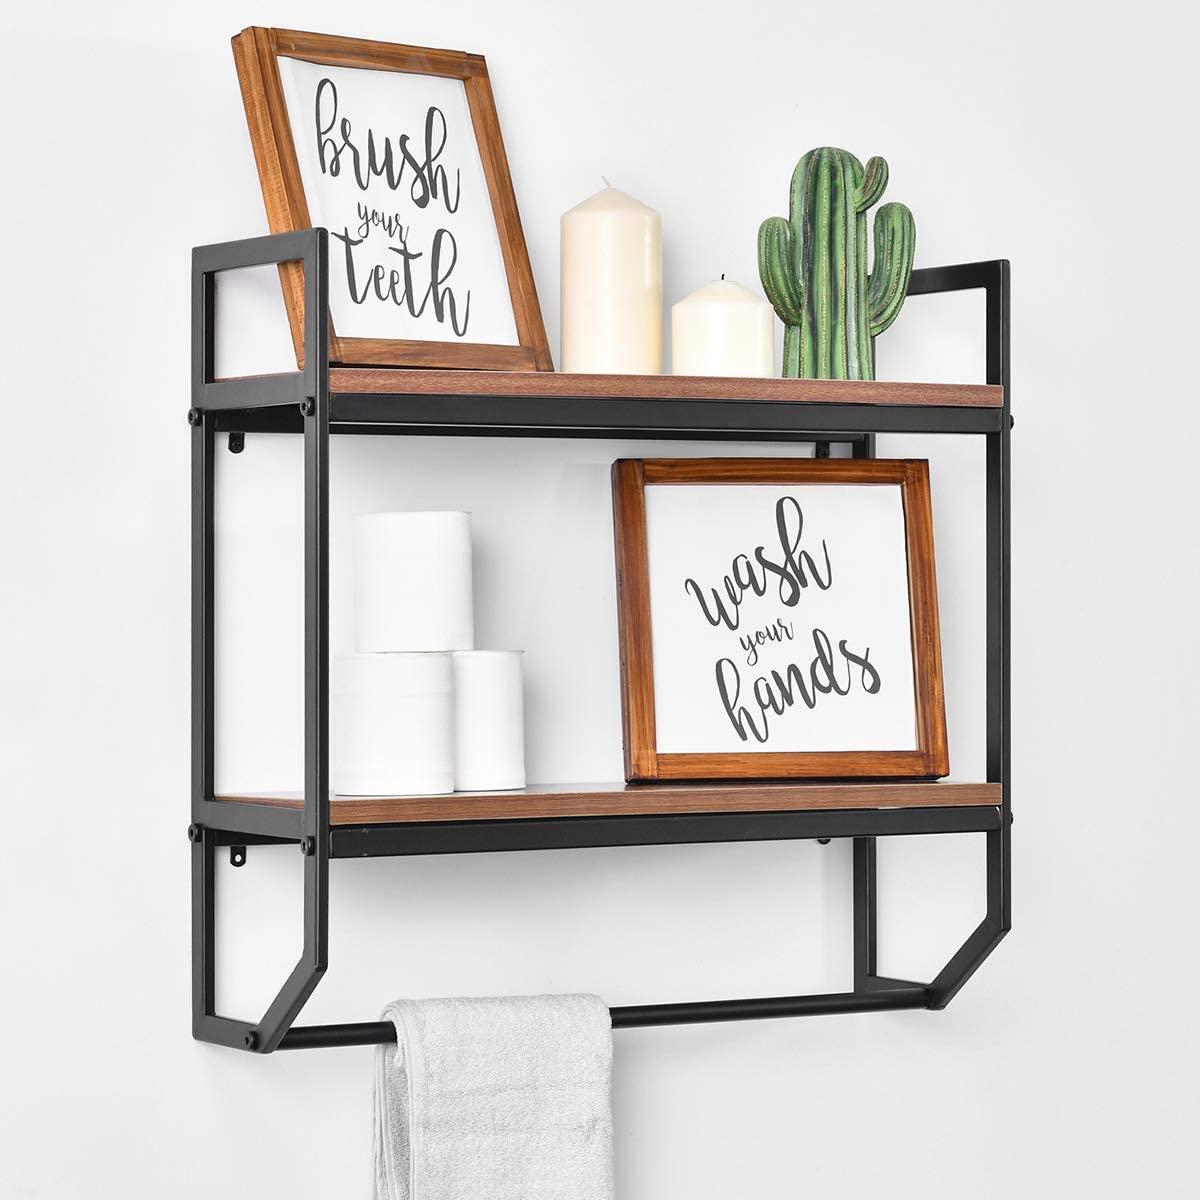 Rustic Bathroom Shelves Wall Mounted Industrial Wood Wall Storage Shelf with Towel Bar 2-Tier Floating Shelves for Bedroom,Living Room,Kitchen 24